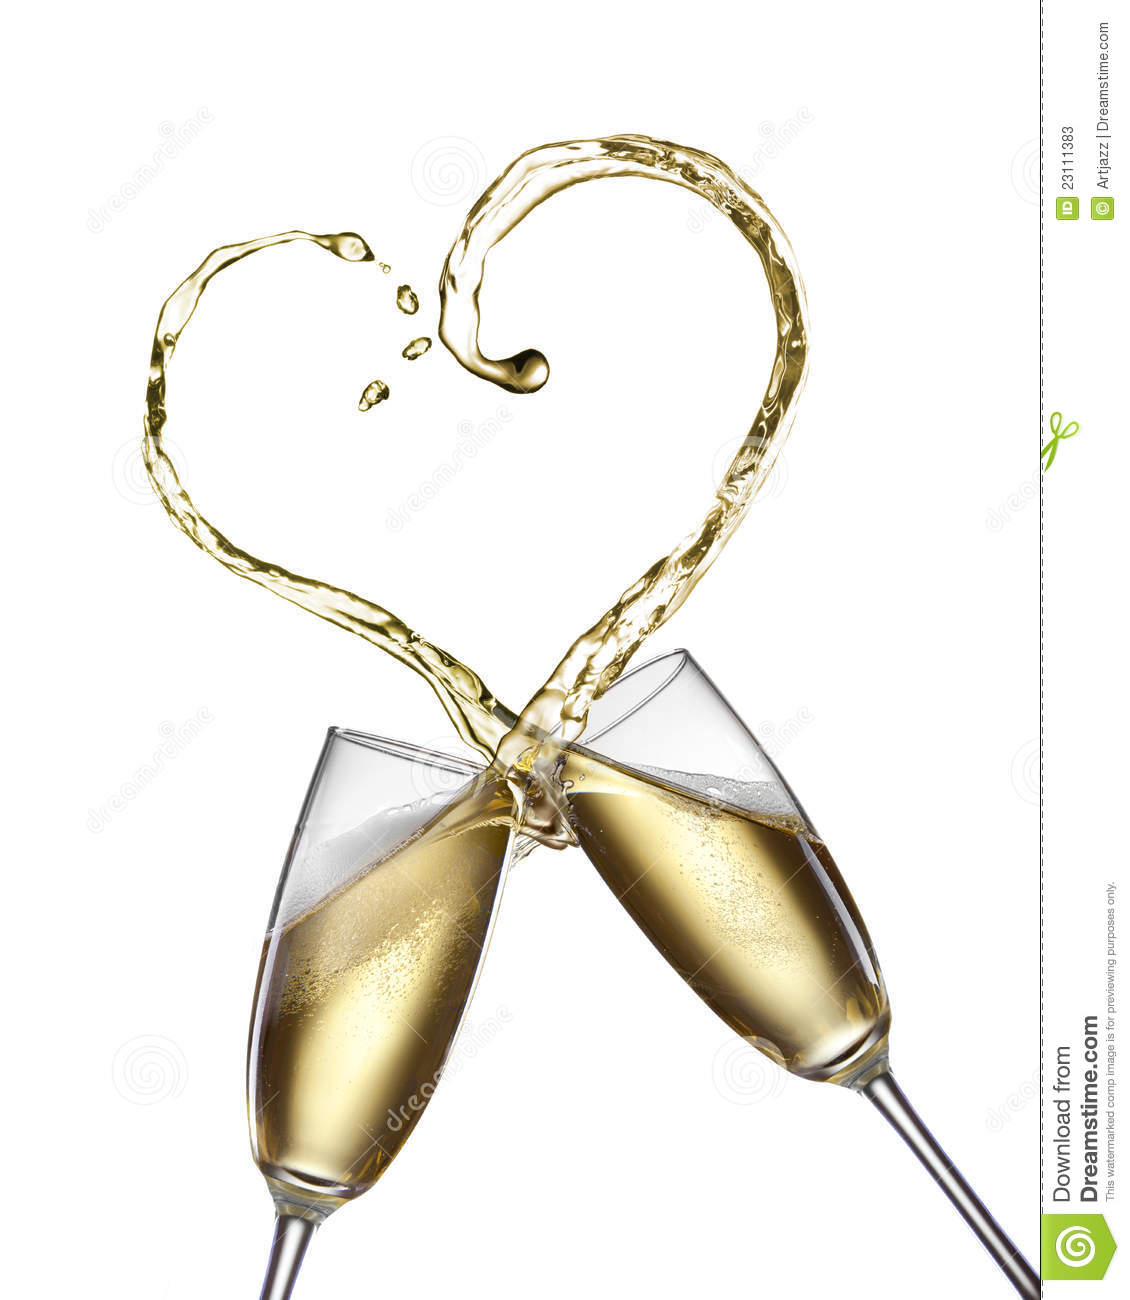 More similar stock images of ` Champagne splash in shape of heart `